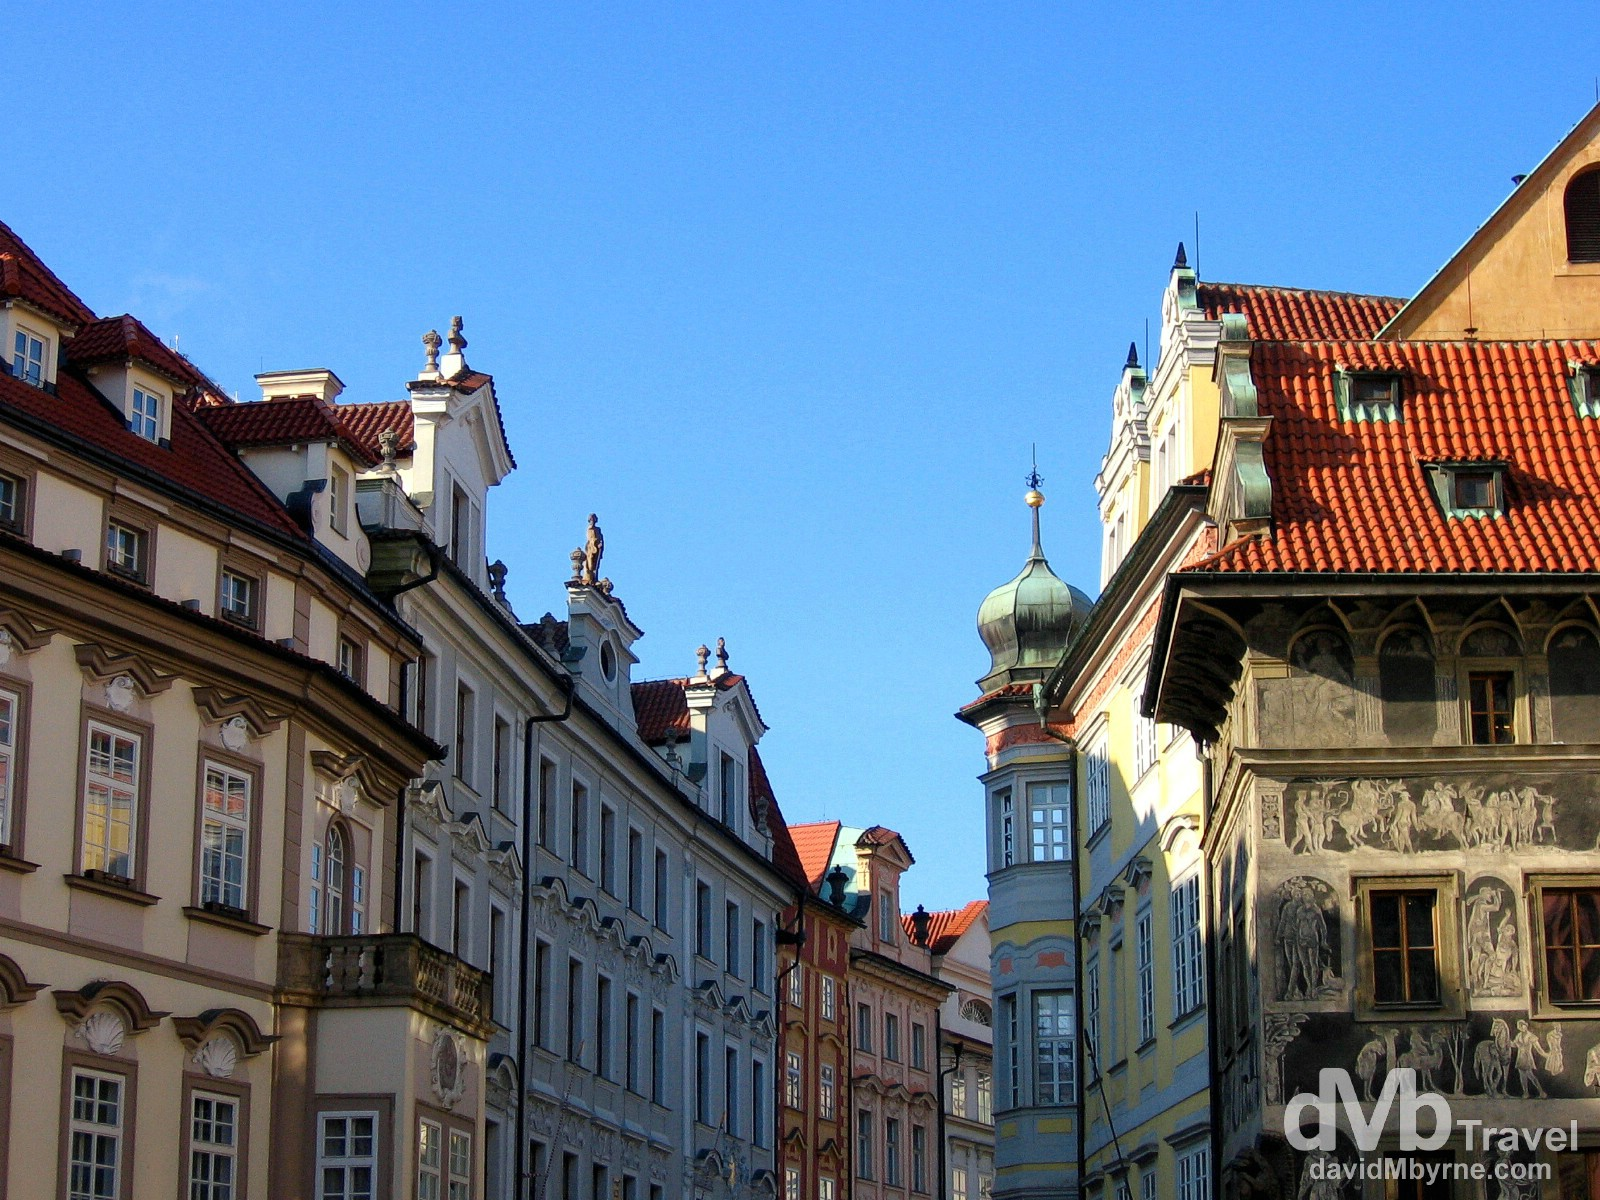 Facades of building off Old Town Square in Prague, Czech Republic. March 8, 2006.